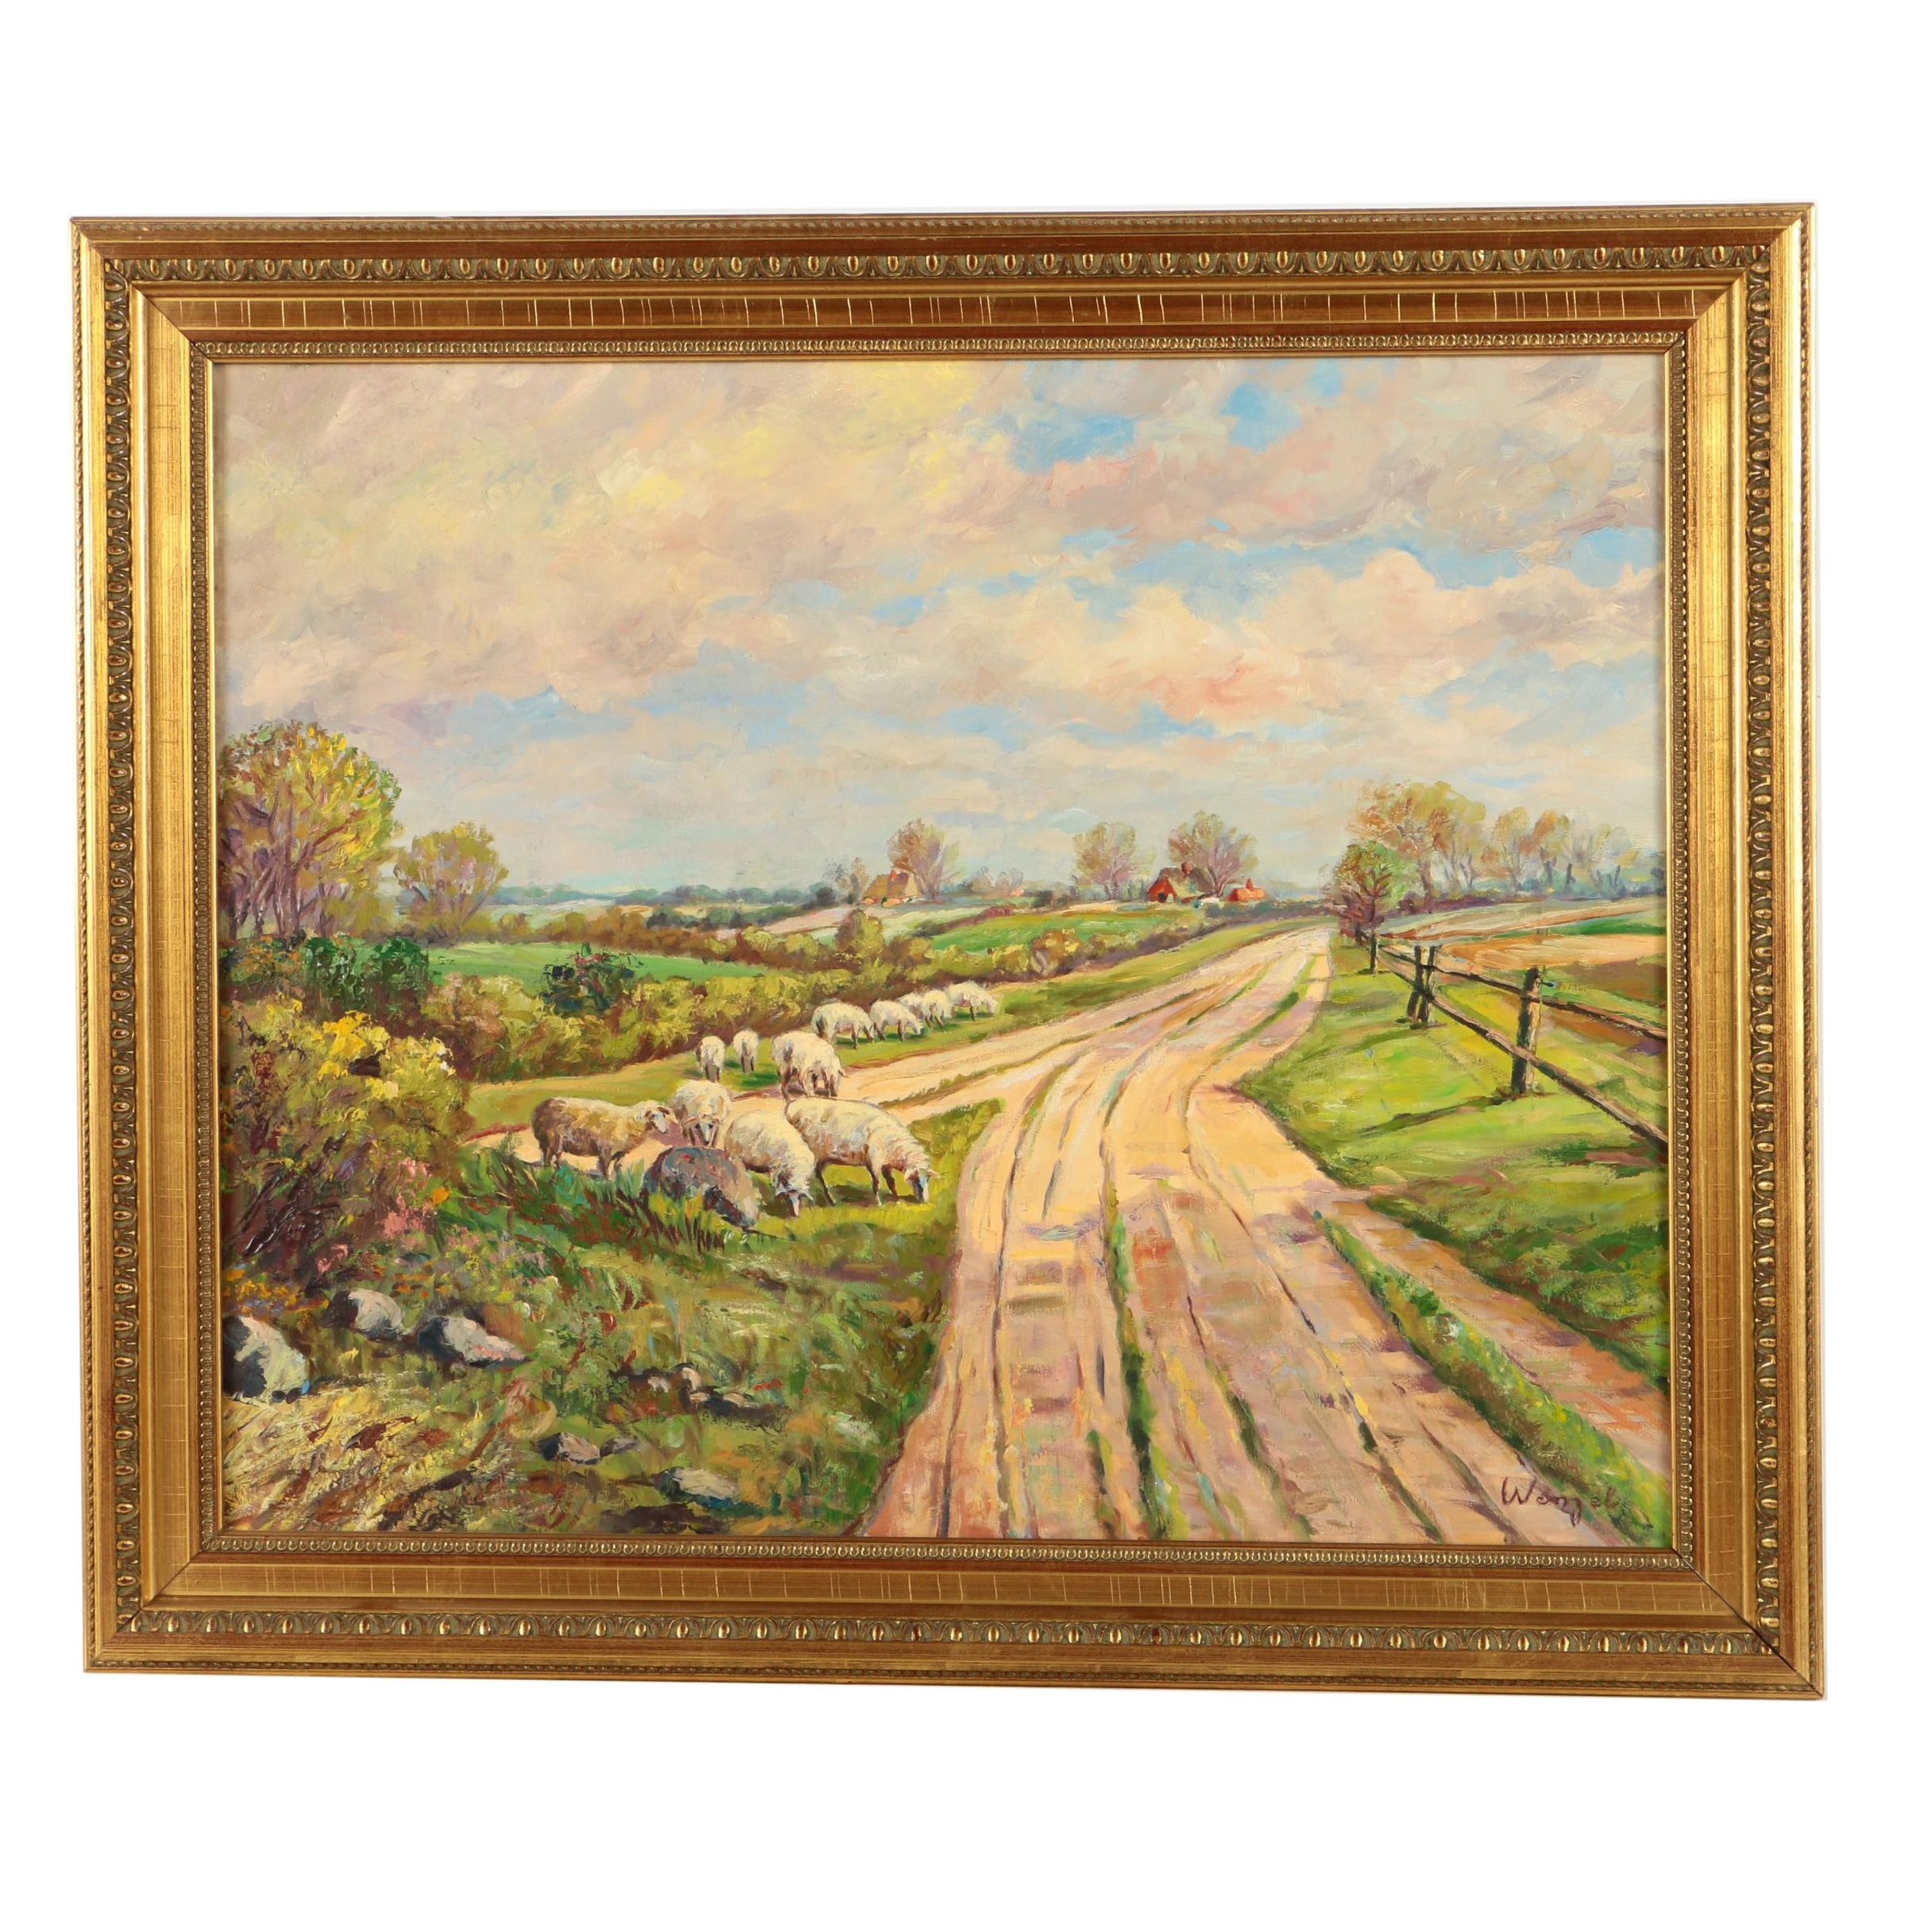 Wenzel Oil Painting on Canvas Pastoral Landscape with Sheep